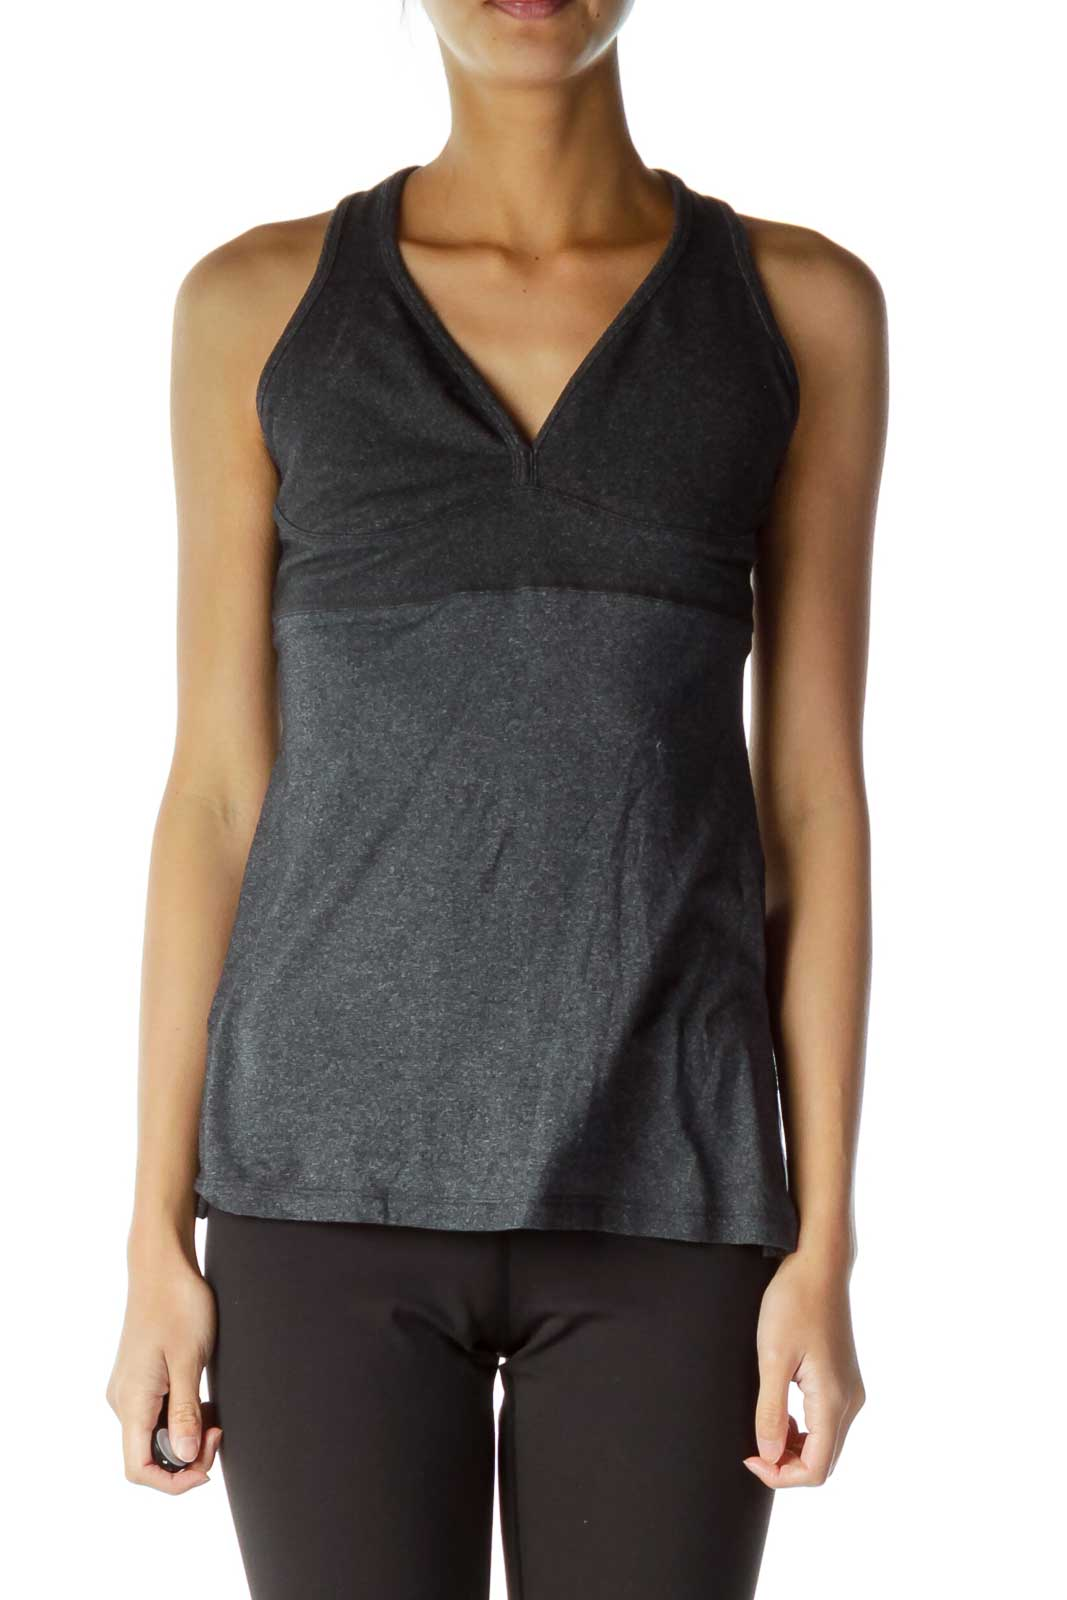 Grey Fitted Yoga Top Front